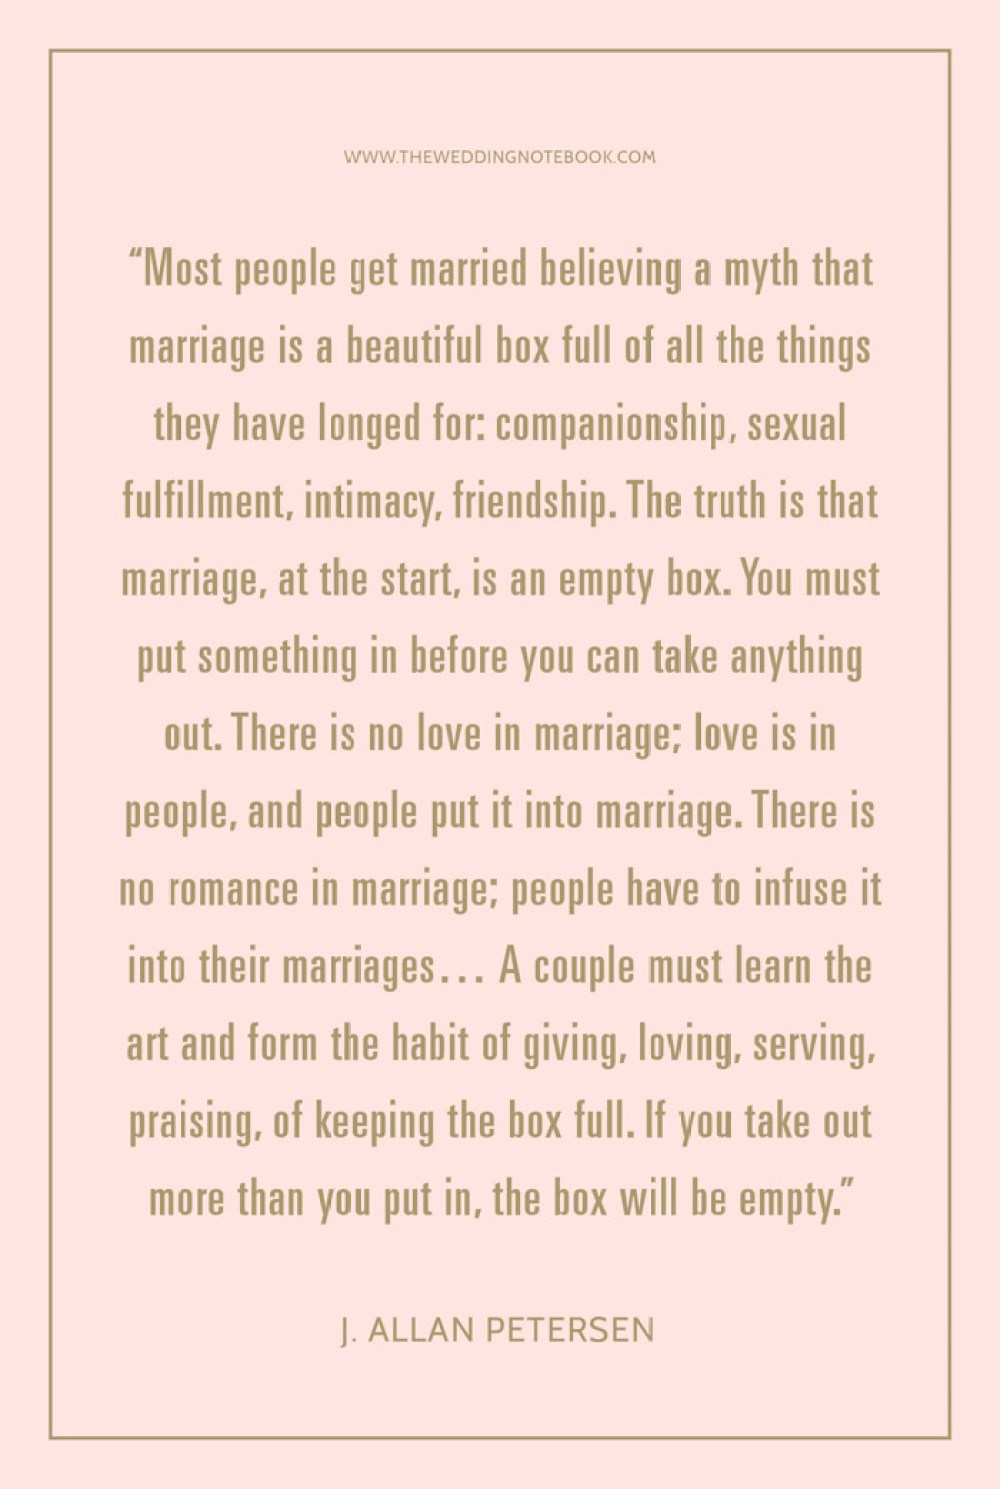 The Meaning Of The Marriage Vow – J. Allan Petersen's quote